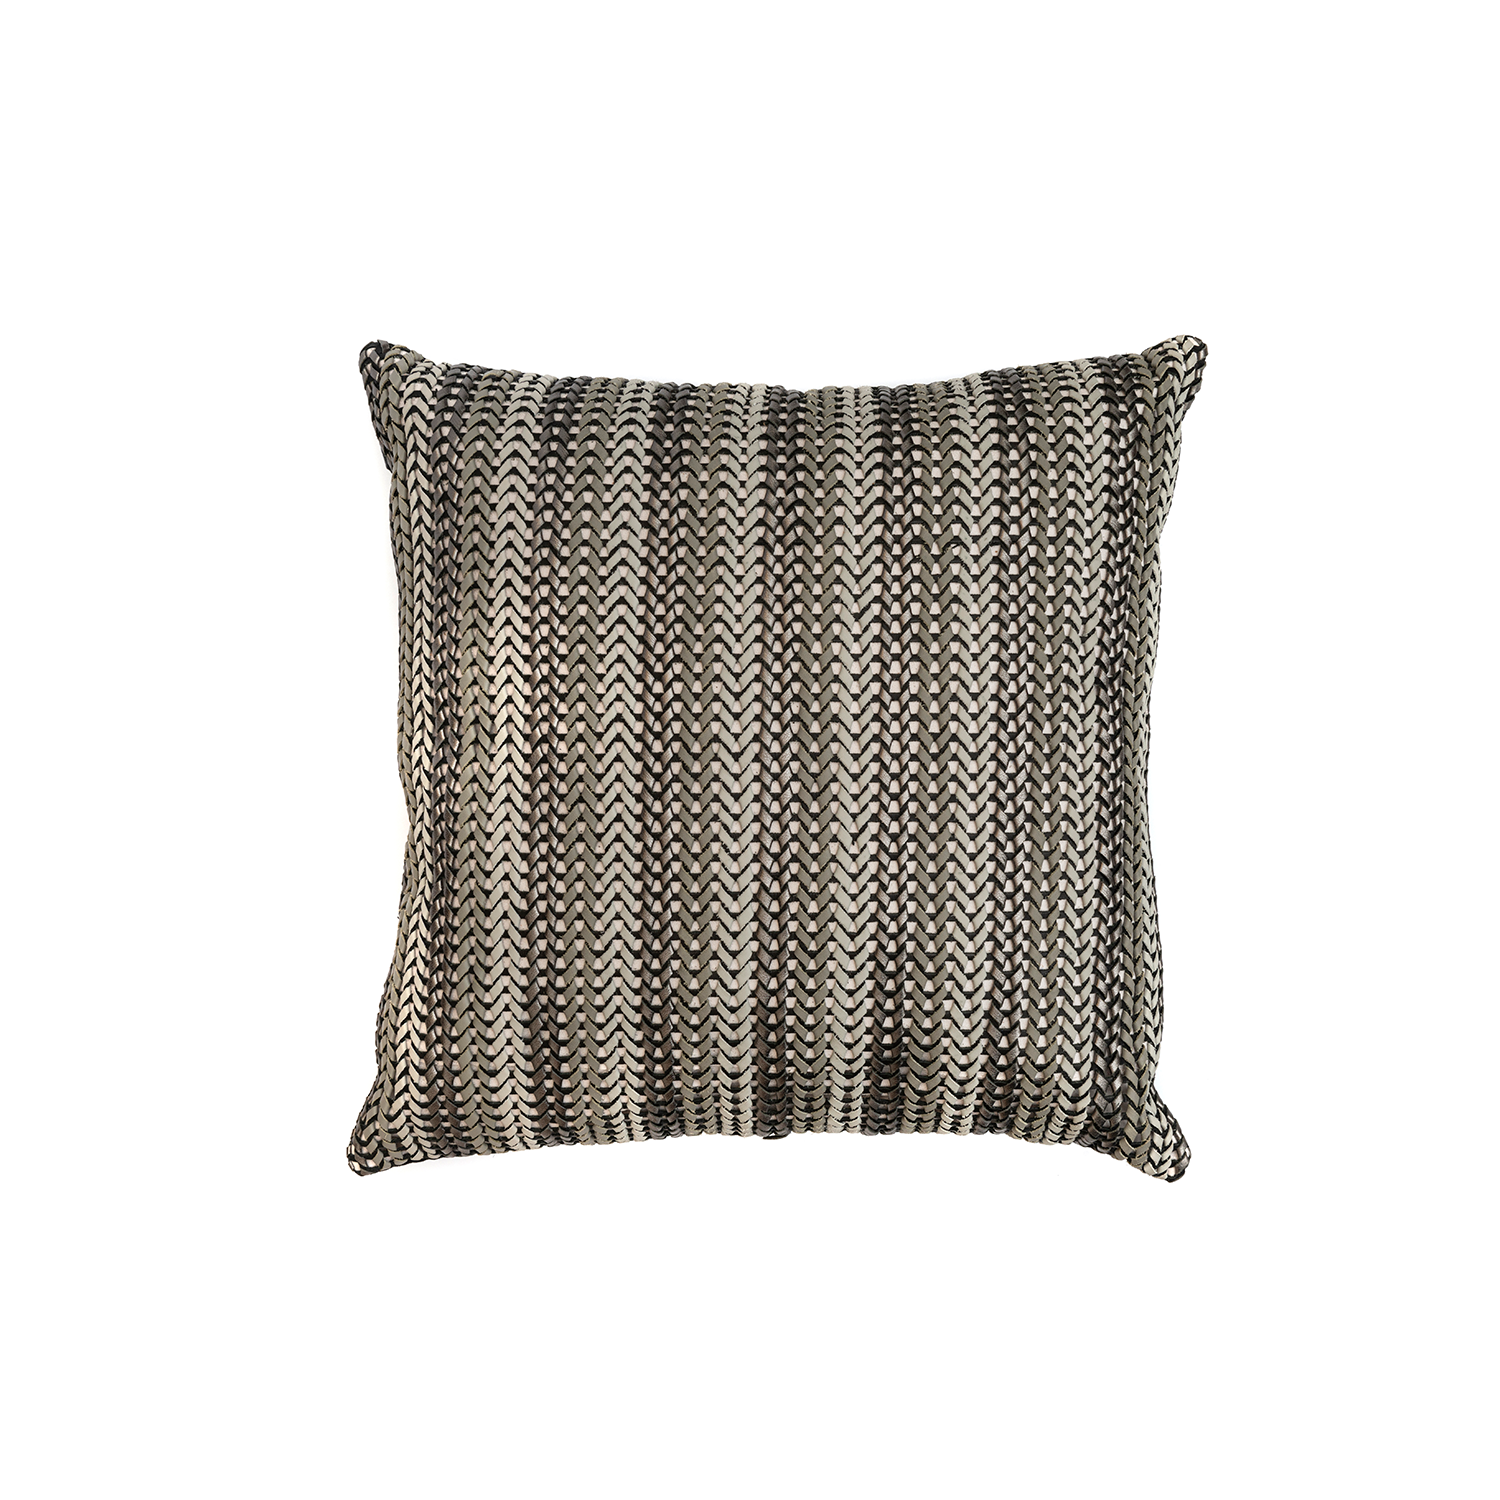 Lanca Stripes Woven Leather Cushion Square - The Lanca Stripes Woven Leather Cushion is designed to complement an ambient with a natural and sophisticated feeling. This cushion style is available in pleated leather or pleated suede leather. Elisa Atheniense woven handmade leather cushions are specially manufactured in Brazil using an exclusive treated leather that brings the soft feel touch to every single piece.   The front panel is handwoven in leather and the back panel is 100% Pes, made in Brazil.  The inner cushion is available in Hollow Fibre and European Duck Feathers, made in the UK.  The Lanca Stripes Woven Leather Cushion is available in multiple colours of leather and suede leather. Please enquire for colour combination, see colour chart for reference.   | Matter of Stuff